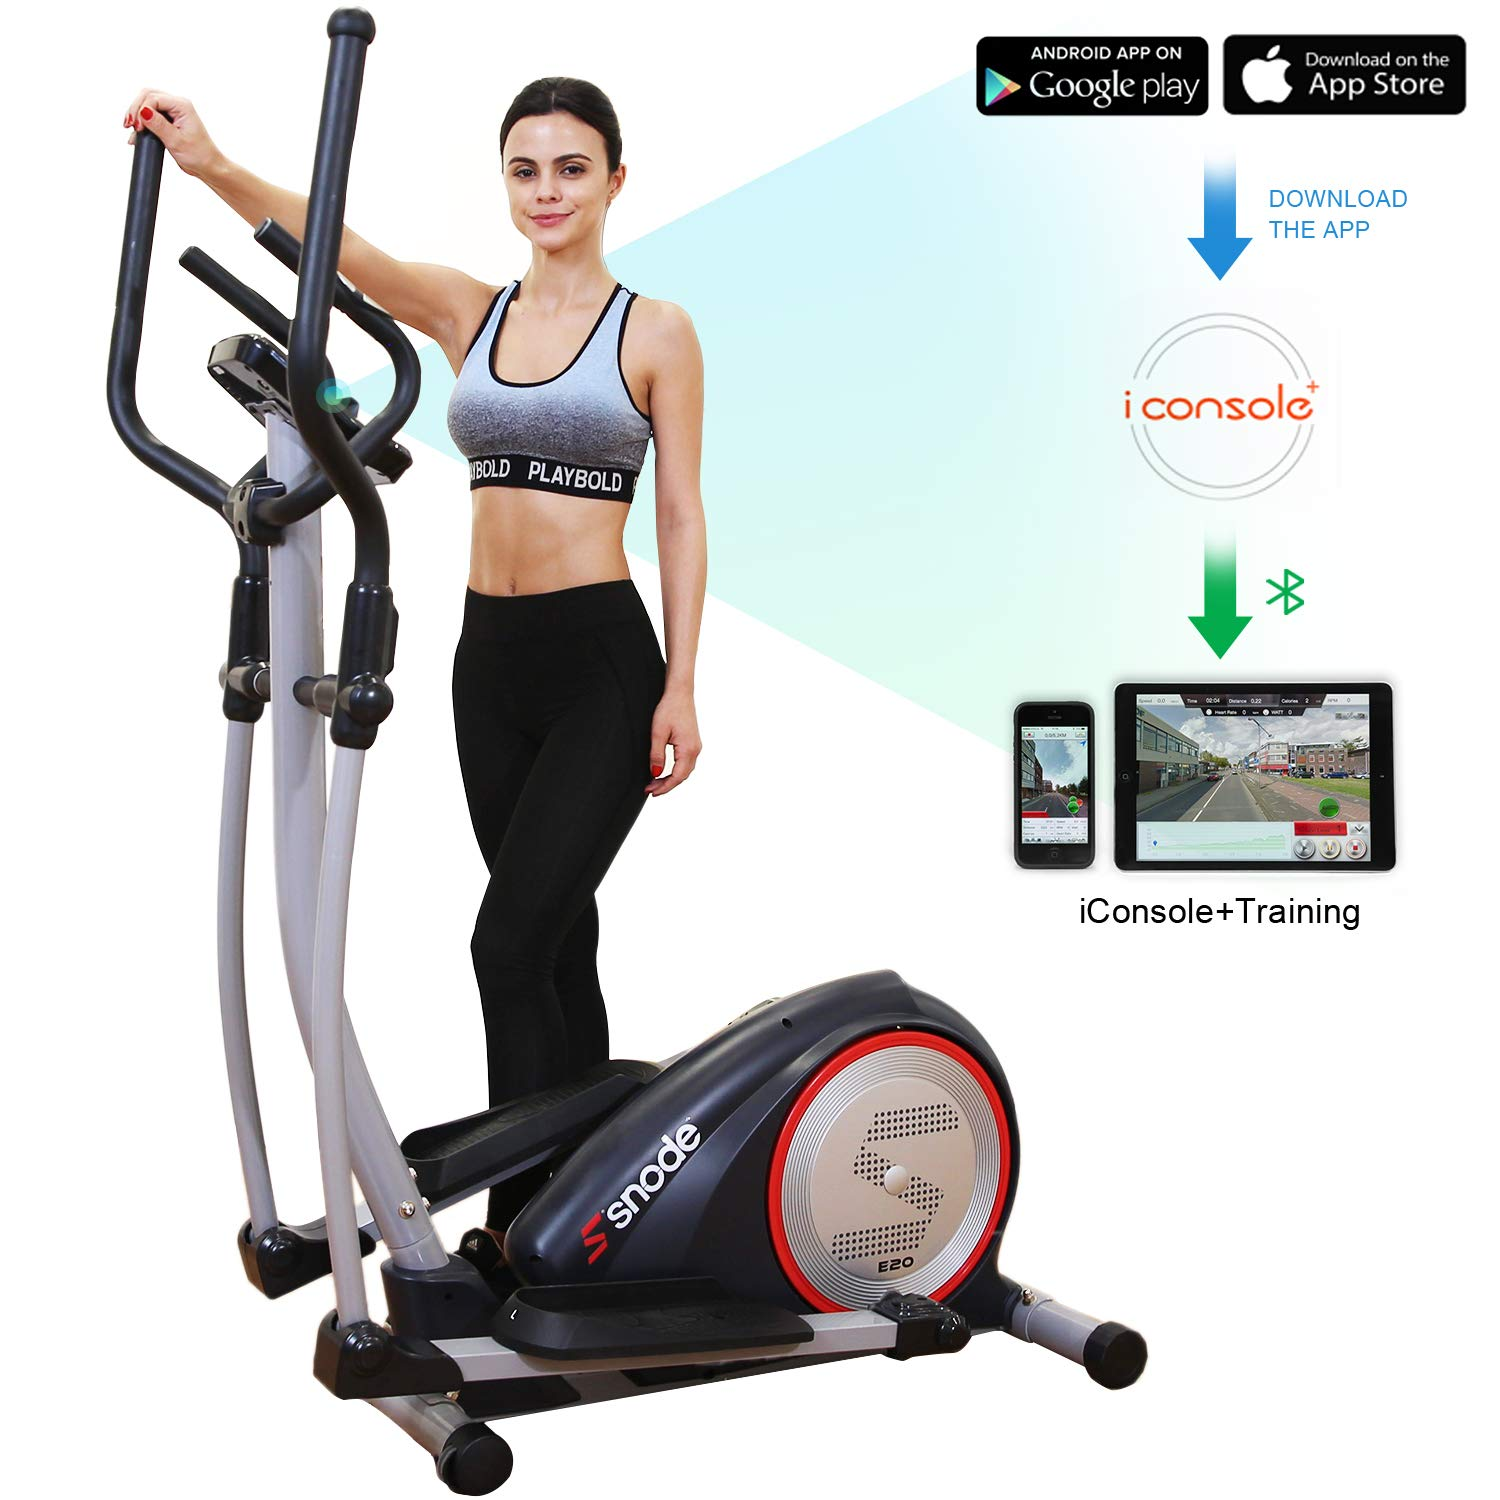 SNODE Magnetic Elliptical Machine Trainer Fitness Exercise Equipment for Home Workout with Bluetooth Capability Heavy Duty Cross Crank